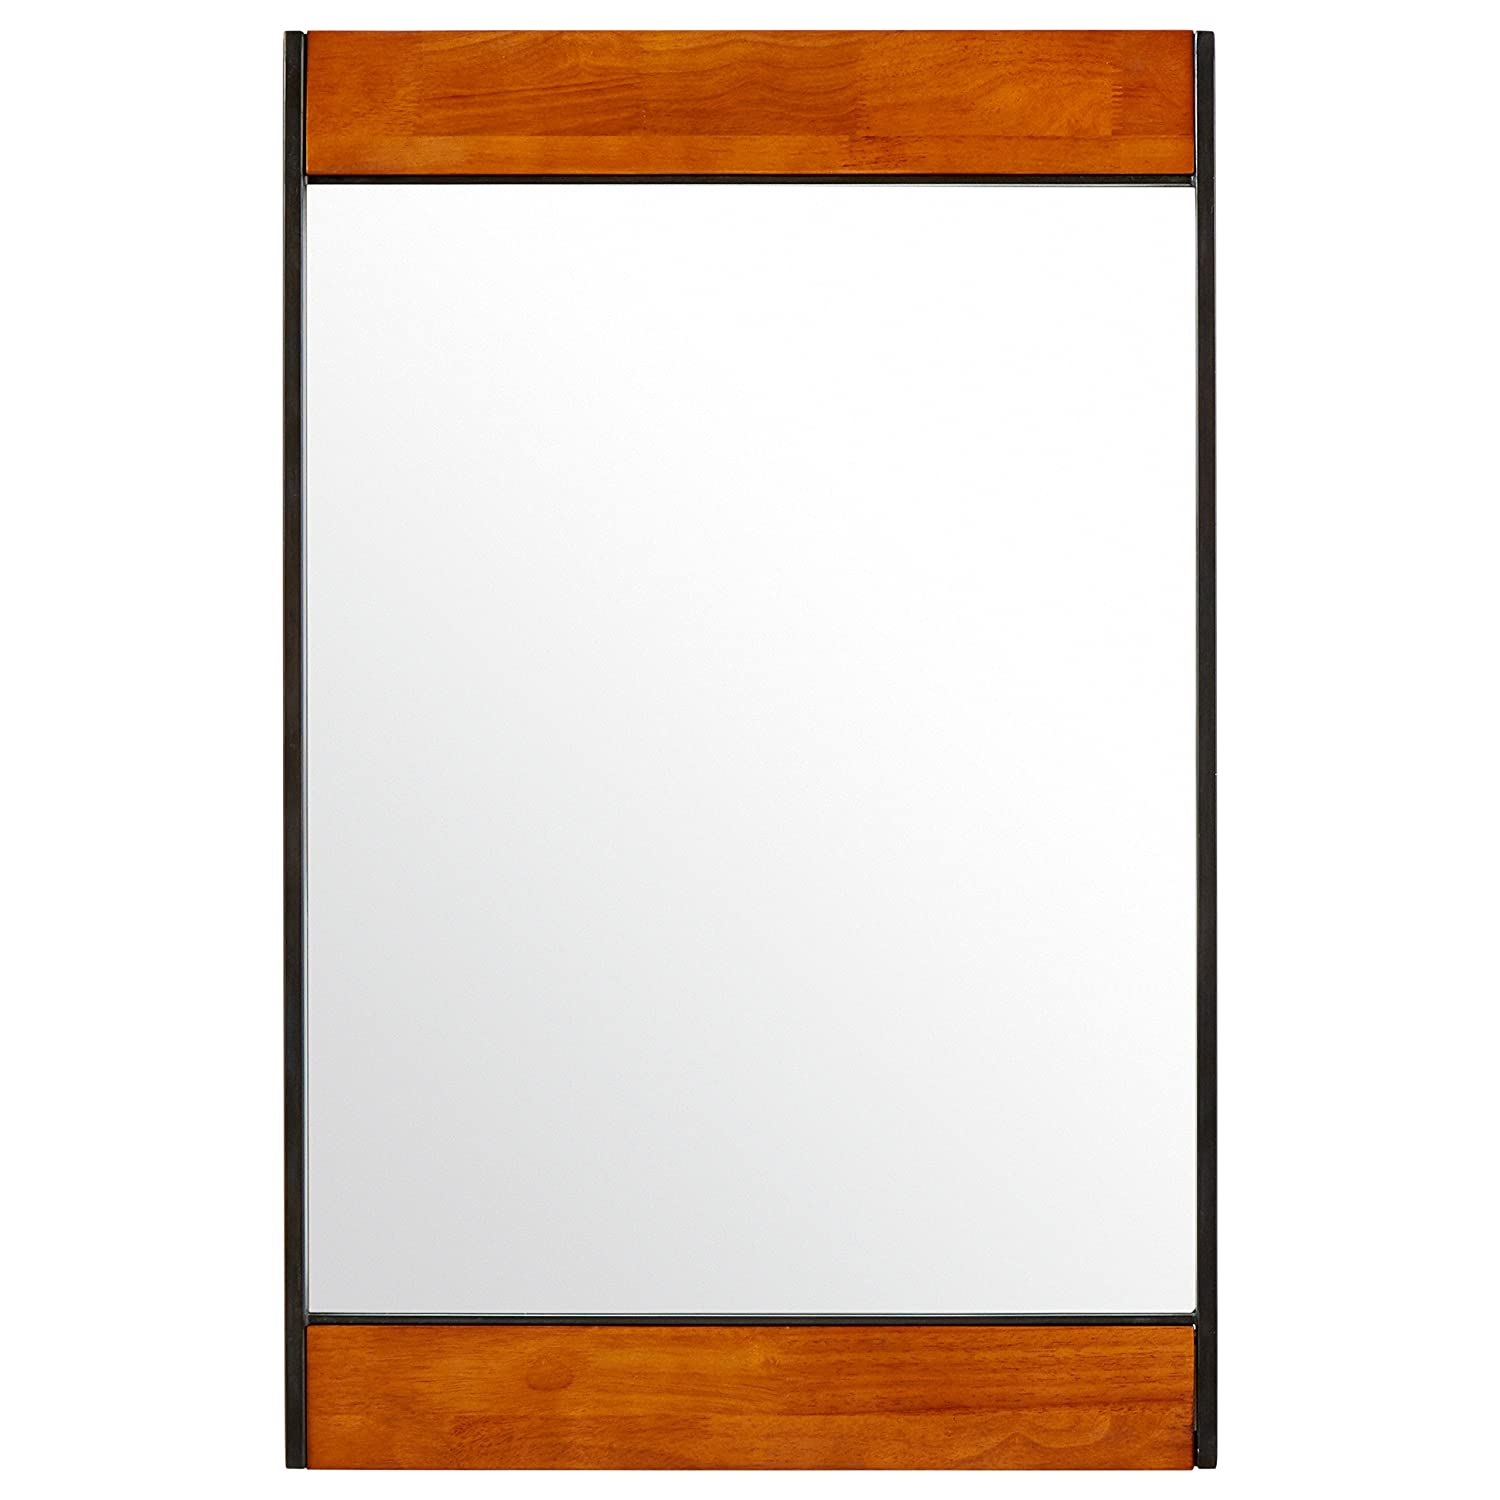 Rivet Wood and Iron Rectangular Mirror, 44.25